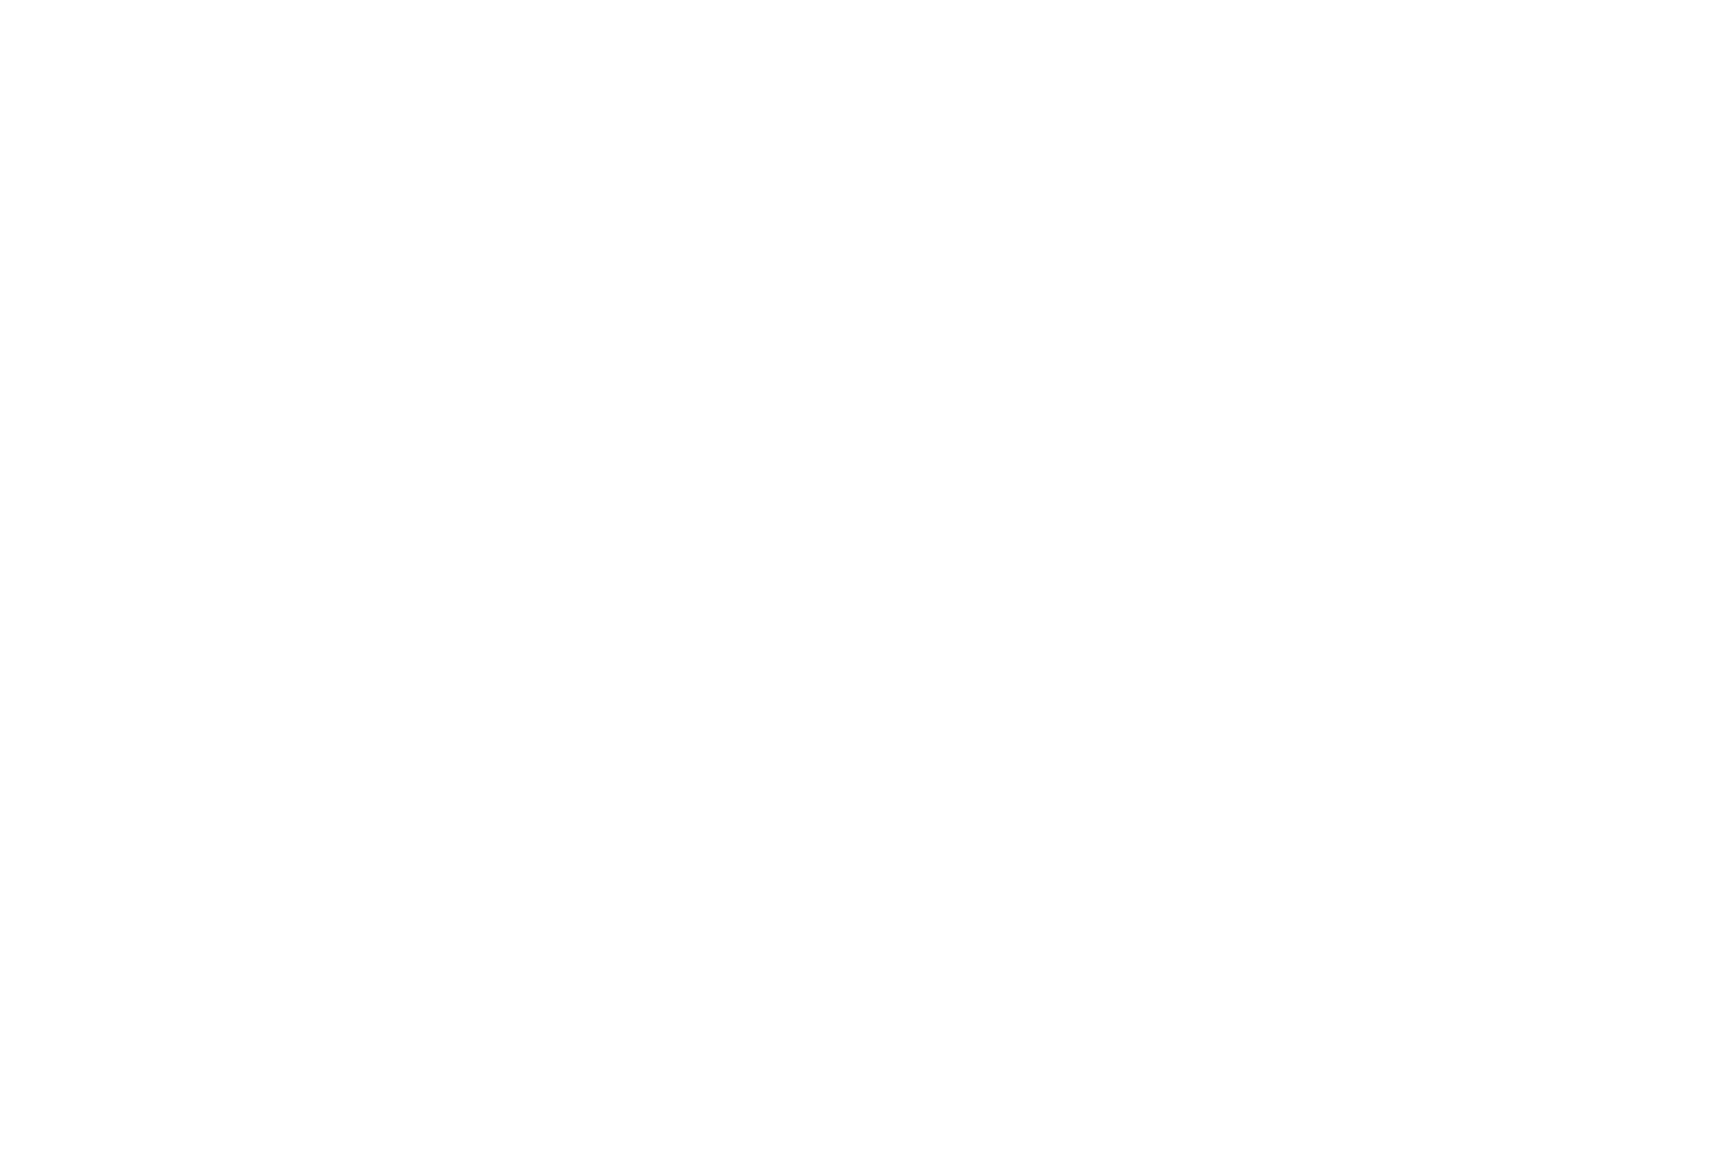 SILVER MEDAL - GLOBAL MUSIC AWARDS - 2017